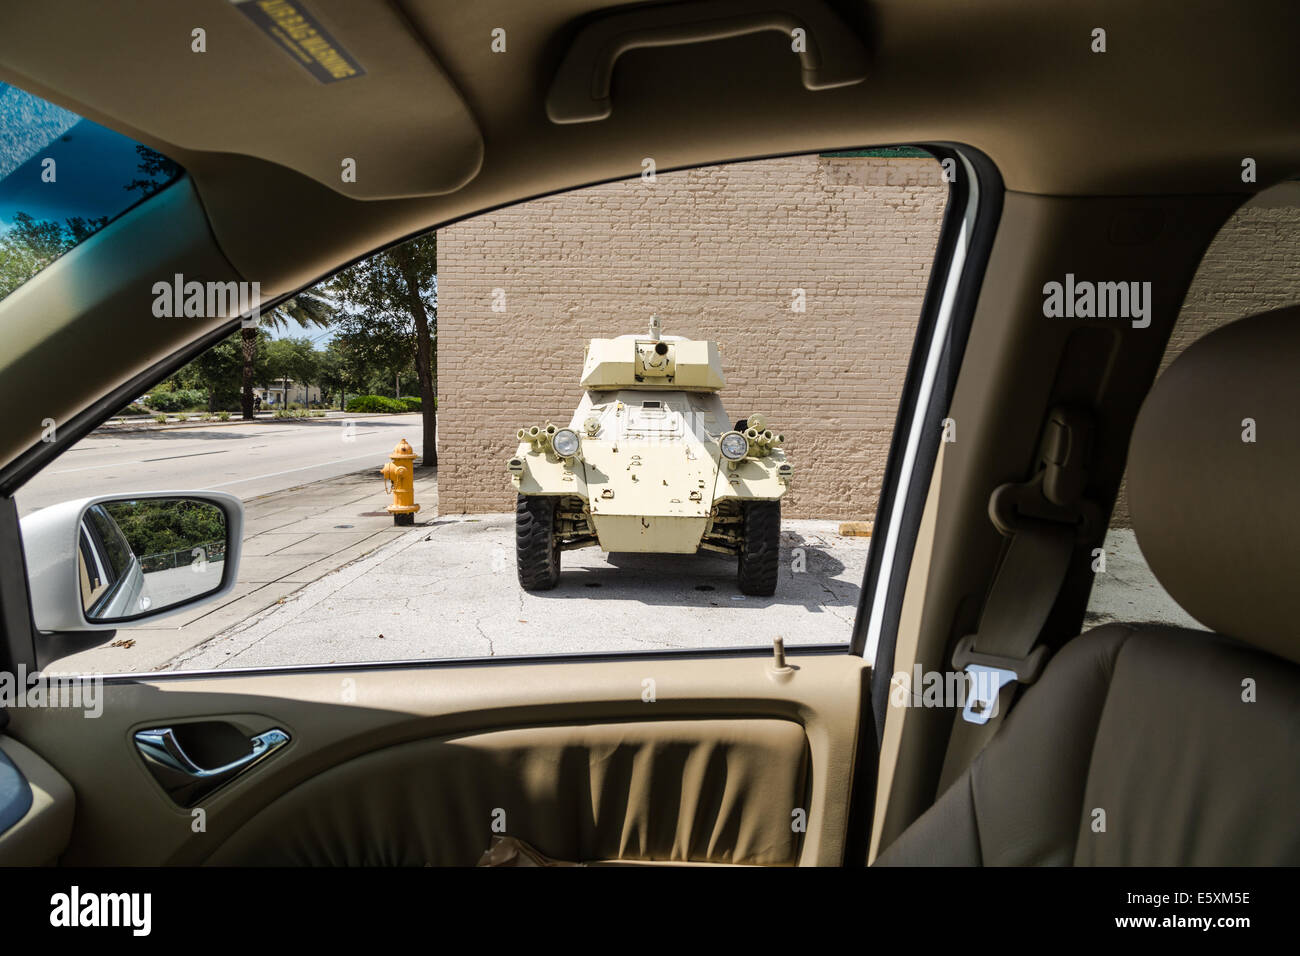 Armored Vehicle - Stock Image